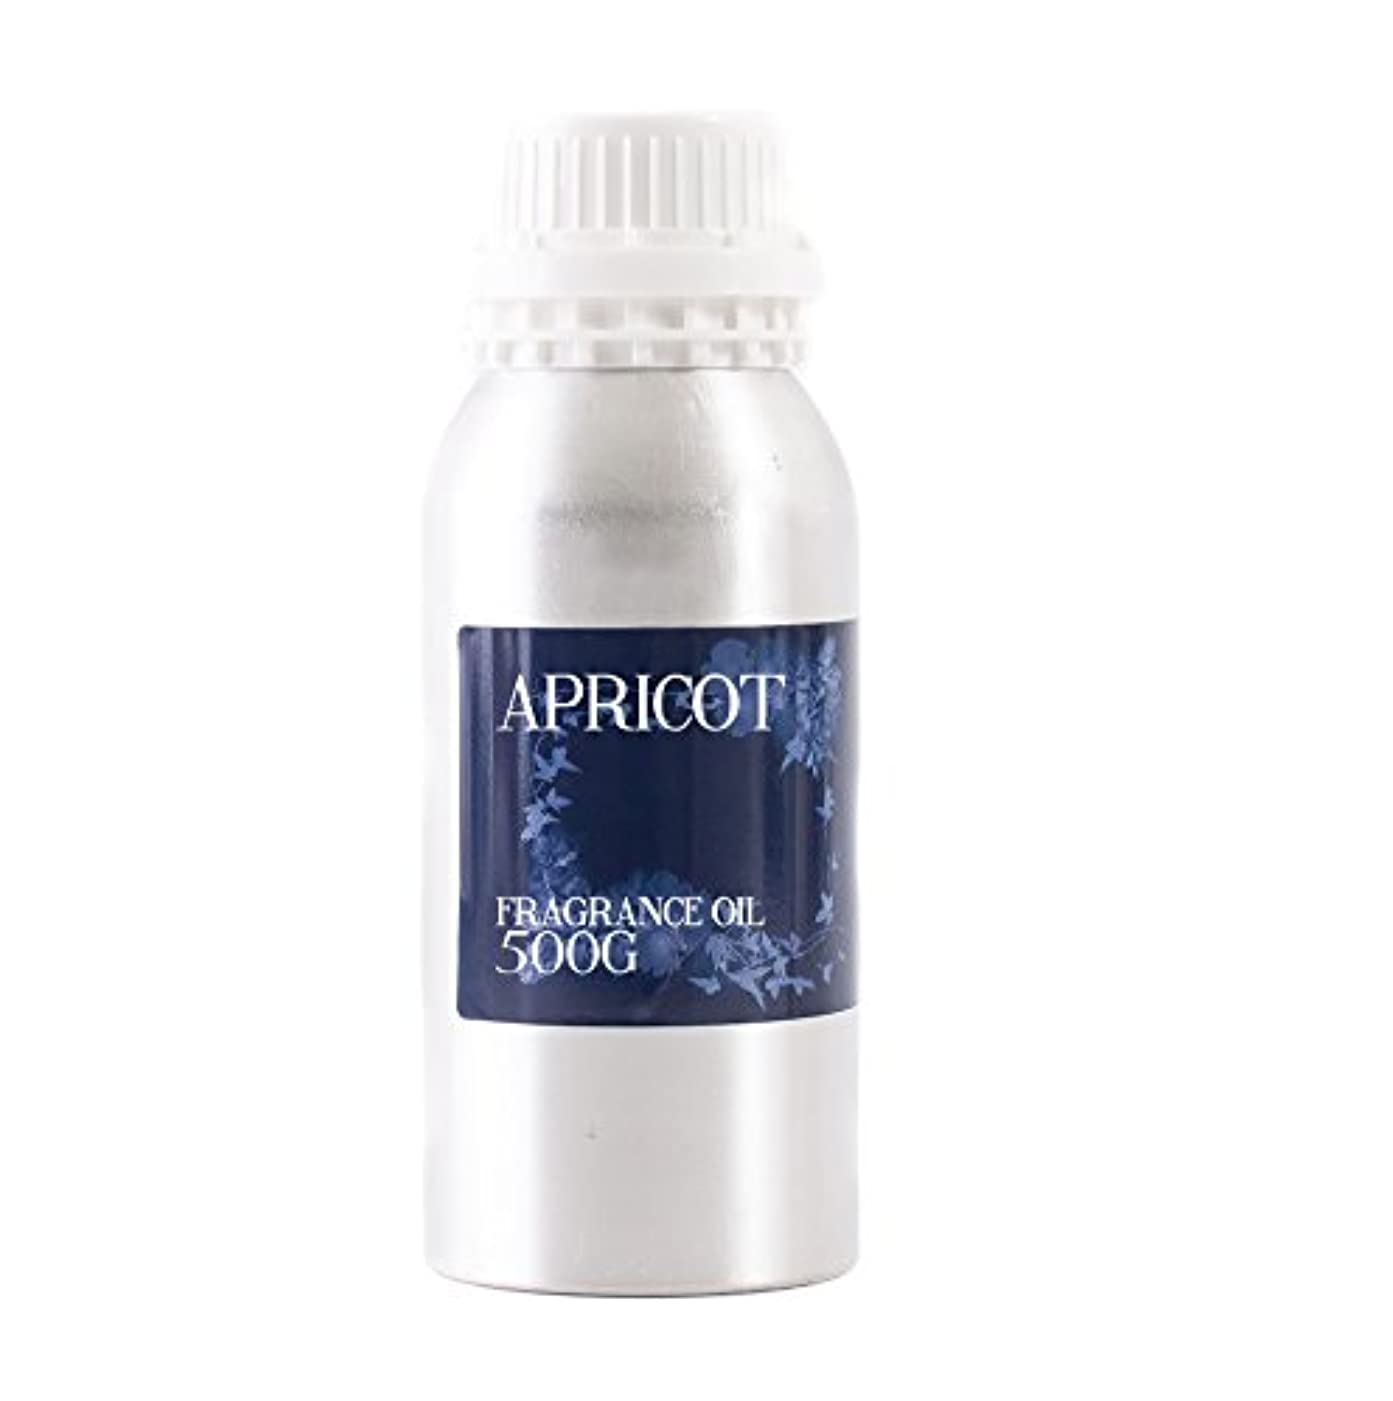 Mystic Moments | Apricot Fragrance Oil - 500g